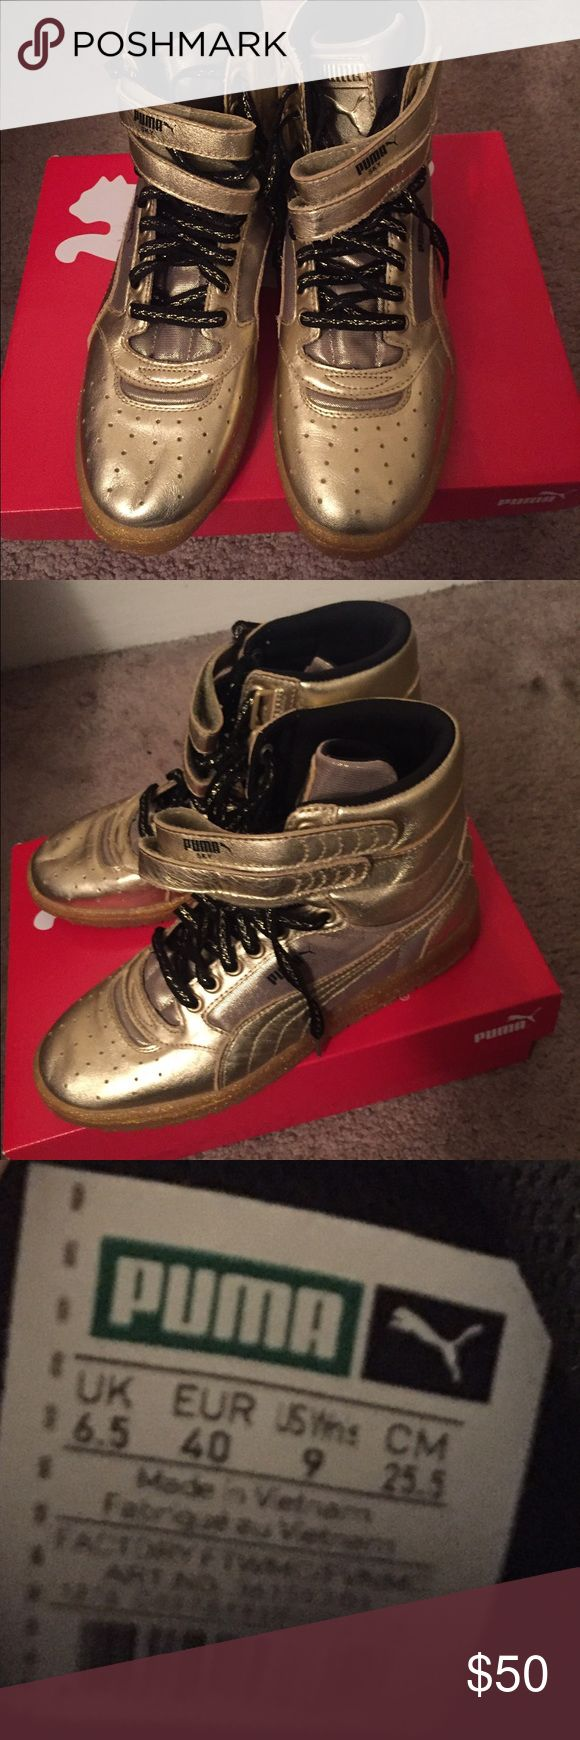 Puma high top Metallic Sneakers Super cool n flashy, never worn pumas! Make a statement. Women's 9. Bought them from DSW. Have too many shoes and trying to get rid of some. Puma Shoes Sneakers